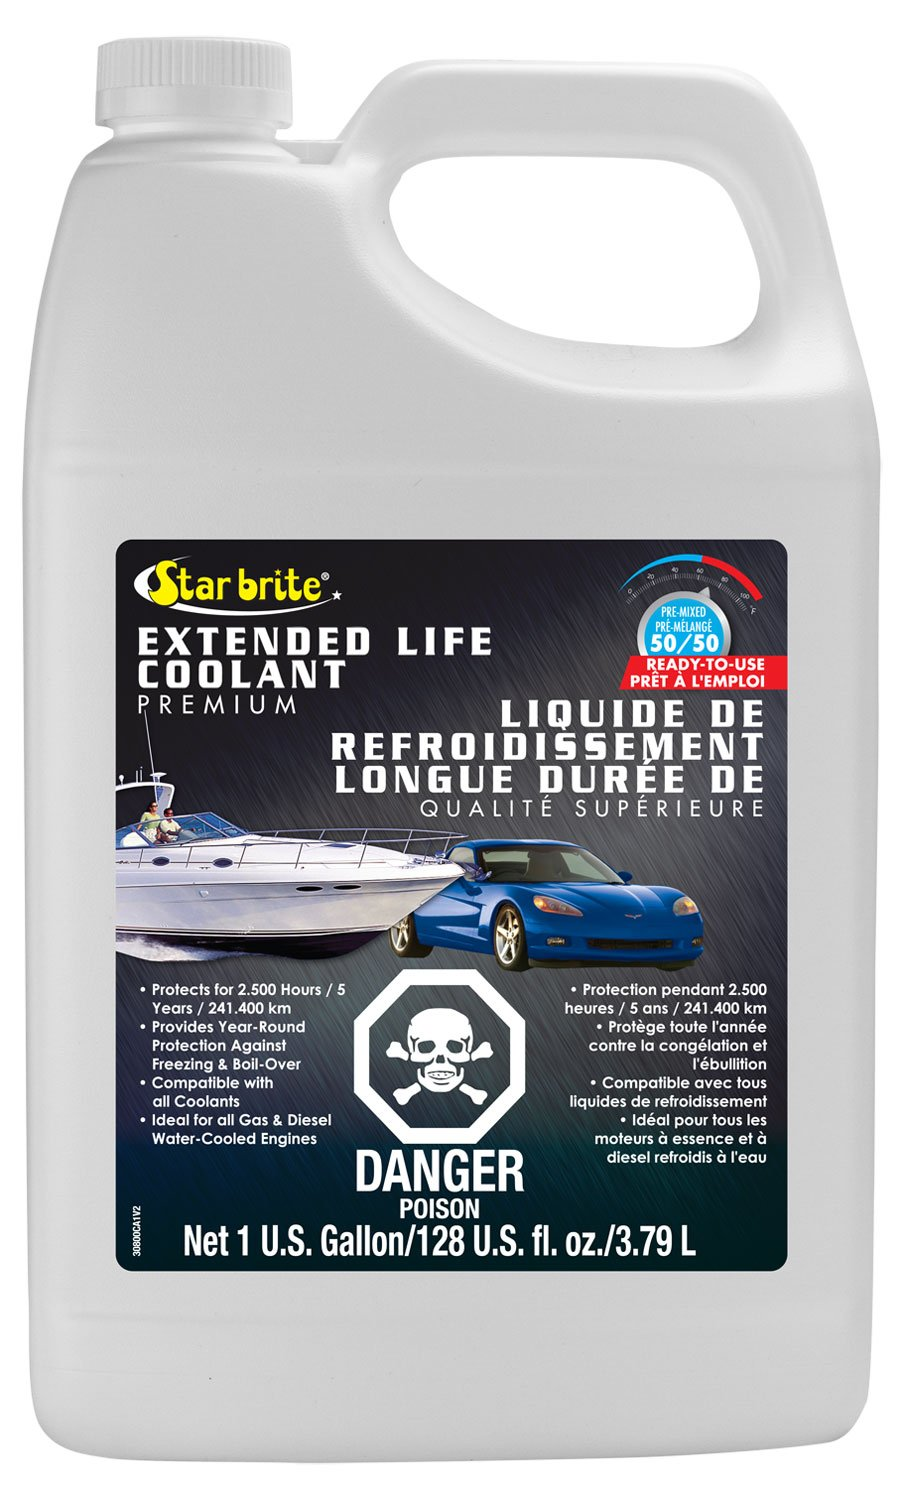 Star brite 030800C 150, 000 Mile Antifreeze Coolant-50/50 Ready-to-Use-3.78L Inc (CA)